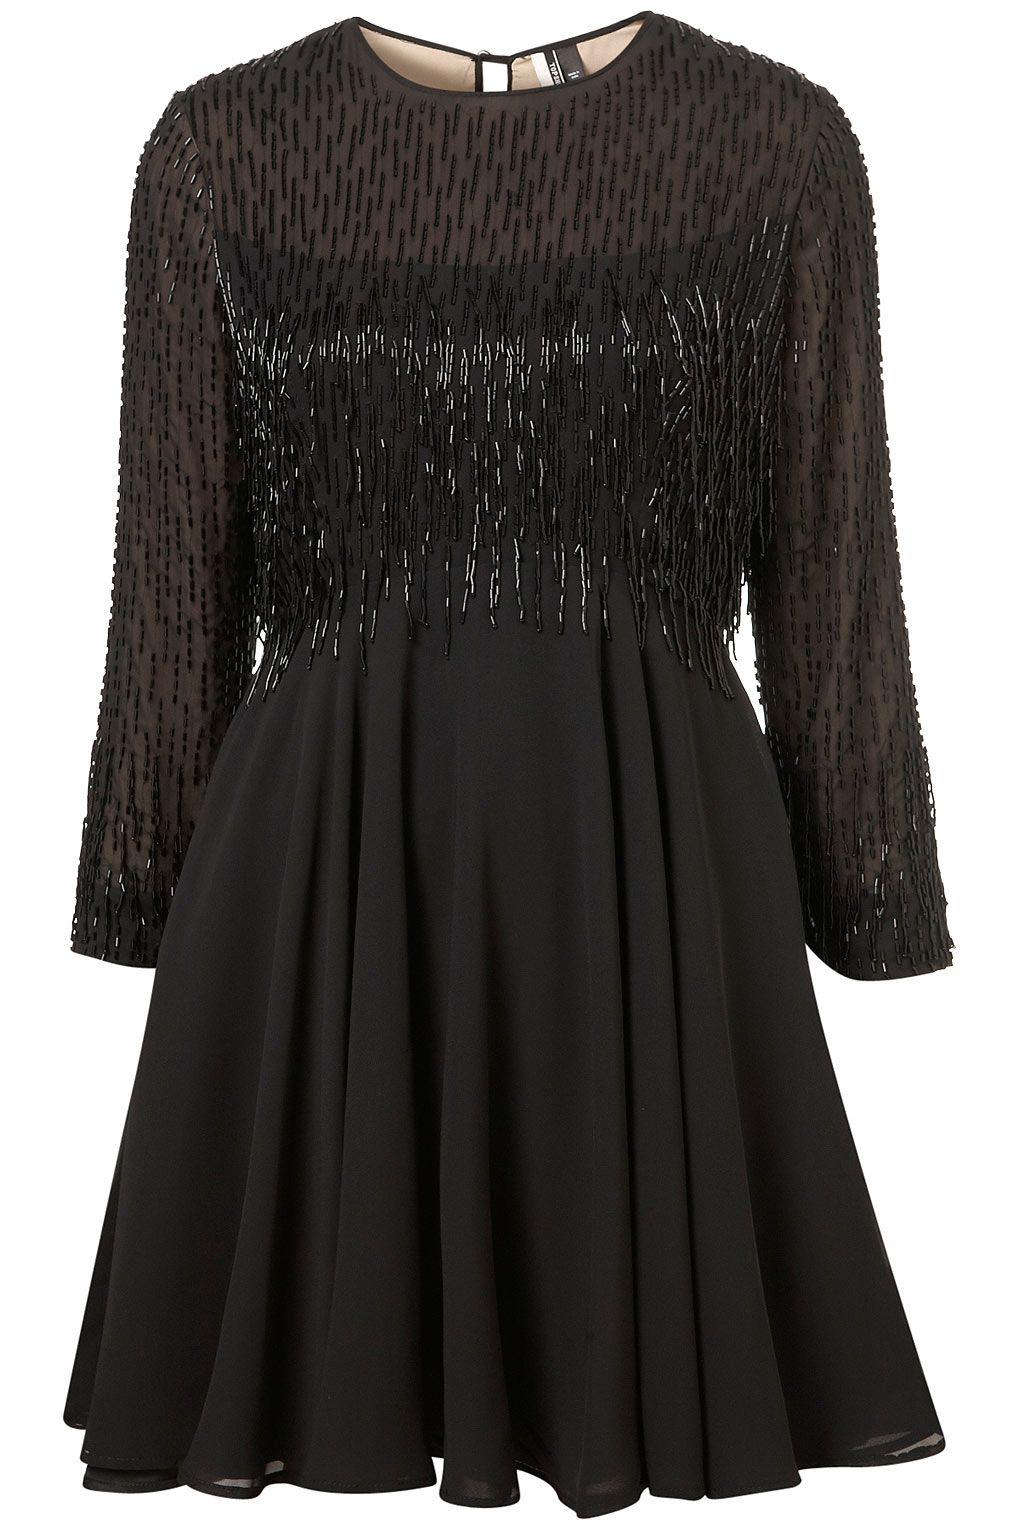 BEADED FRINGE FLIPPY DRESS from TOPSHOP | Closets & Runways | Pinterest